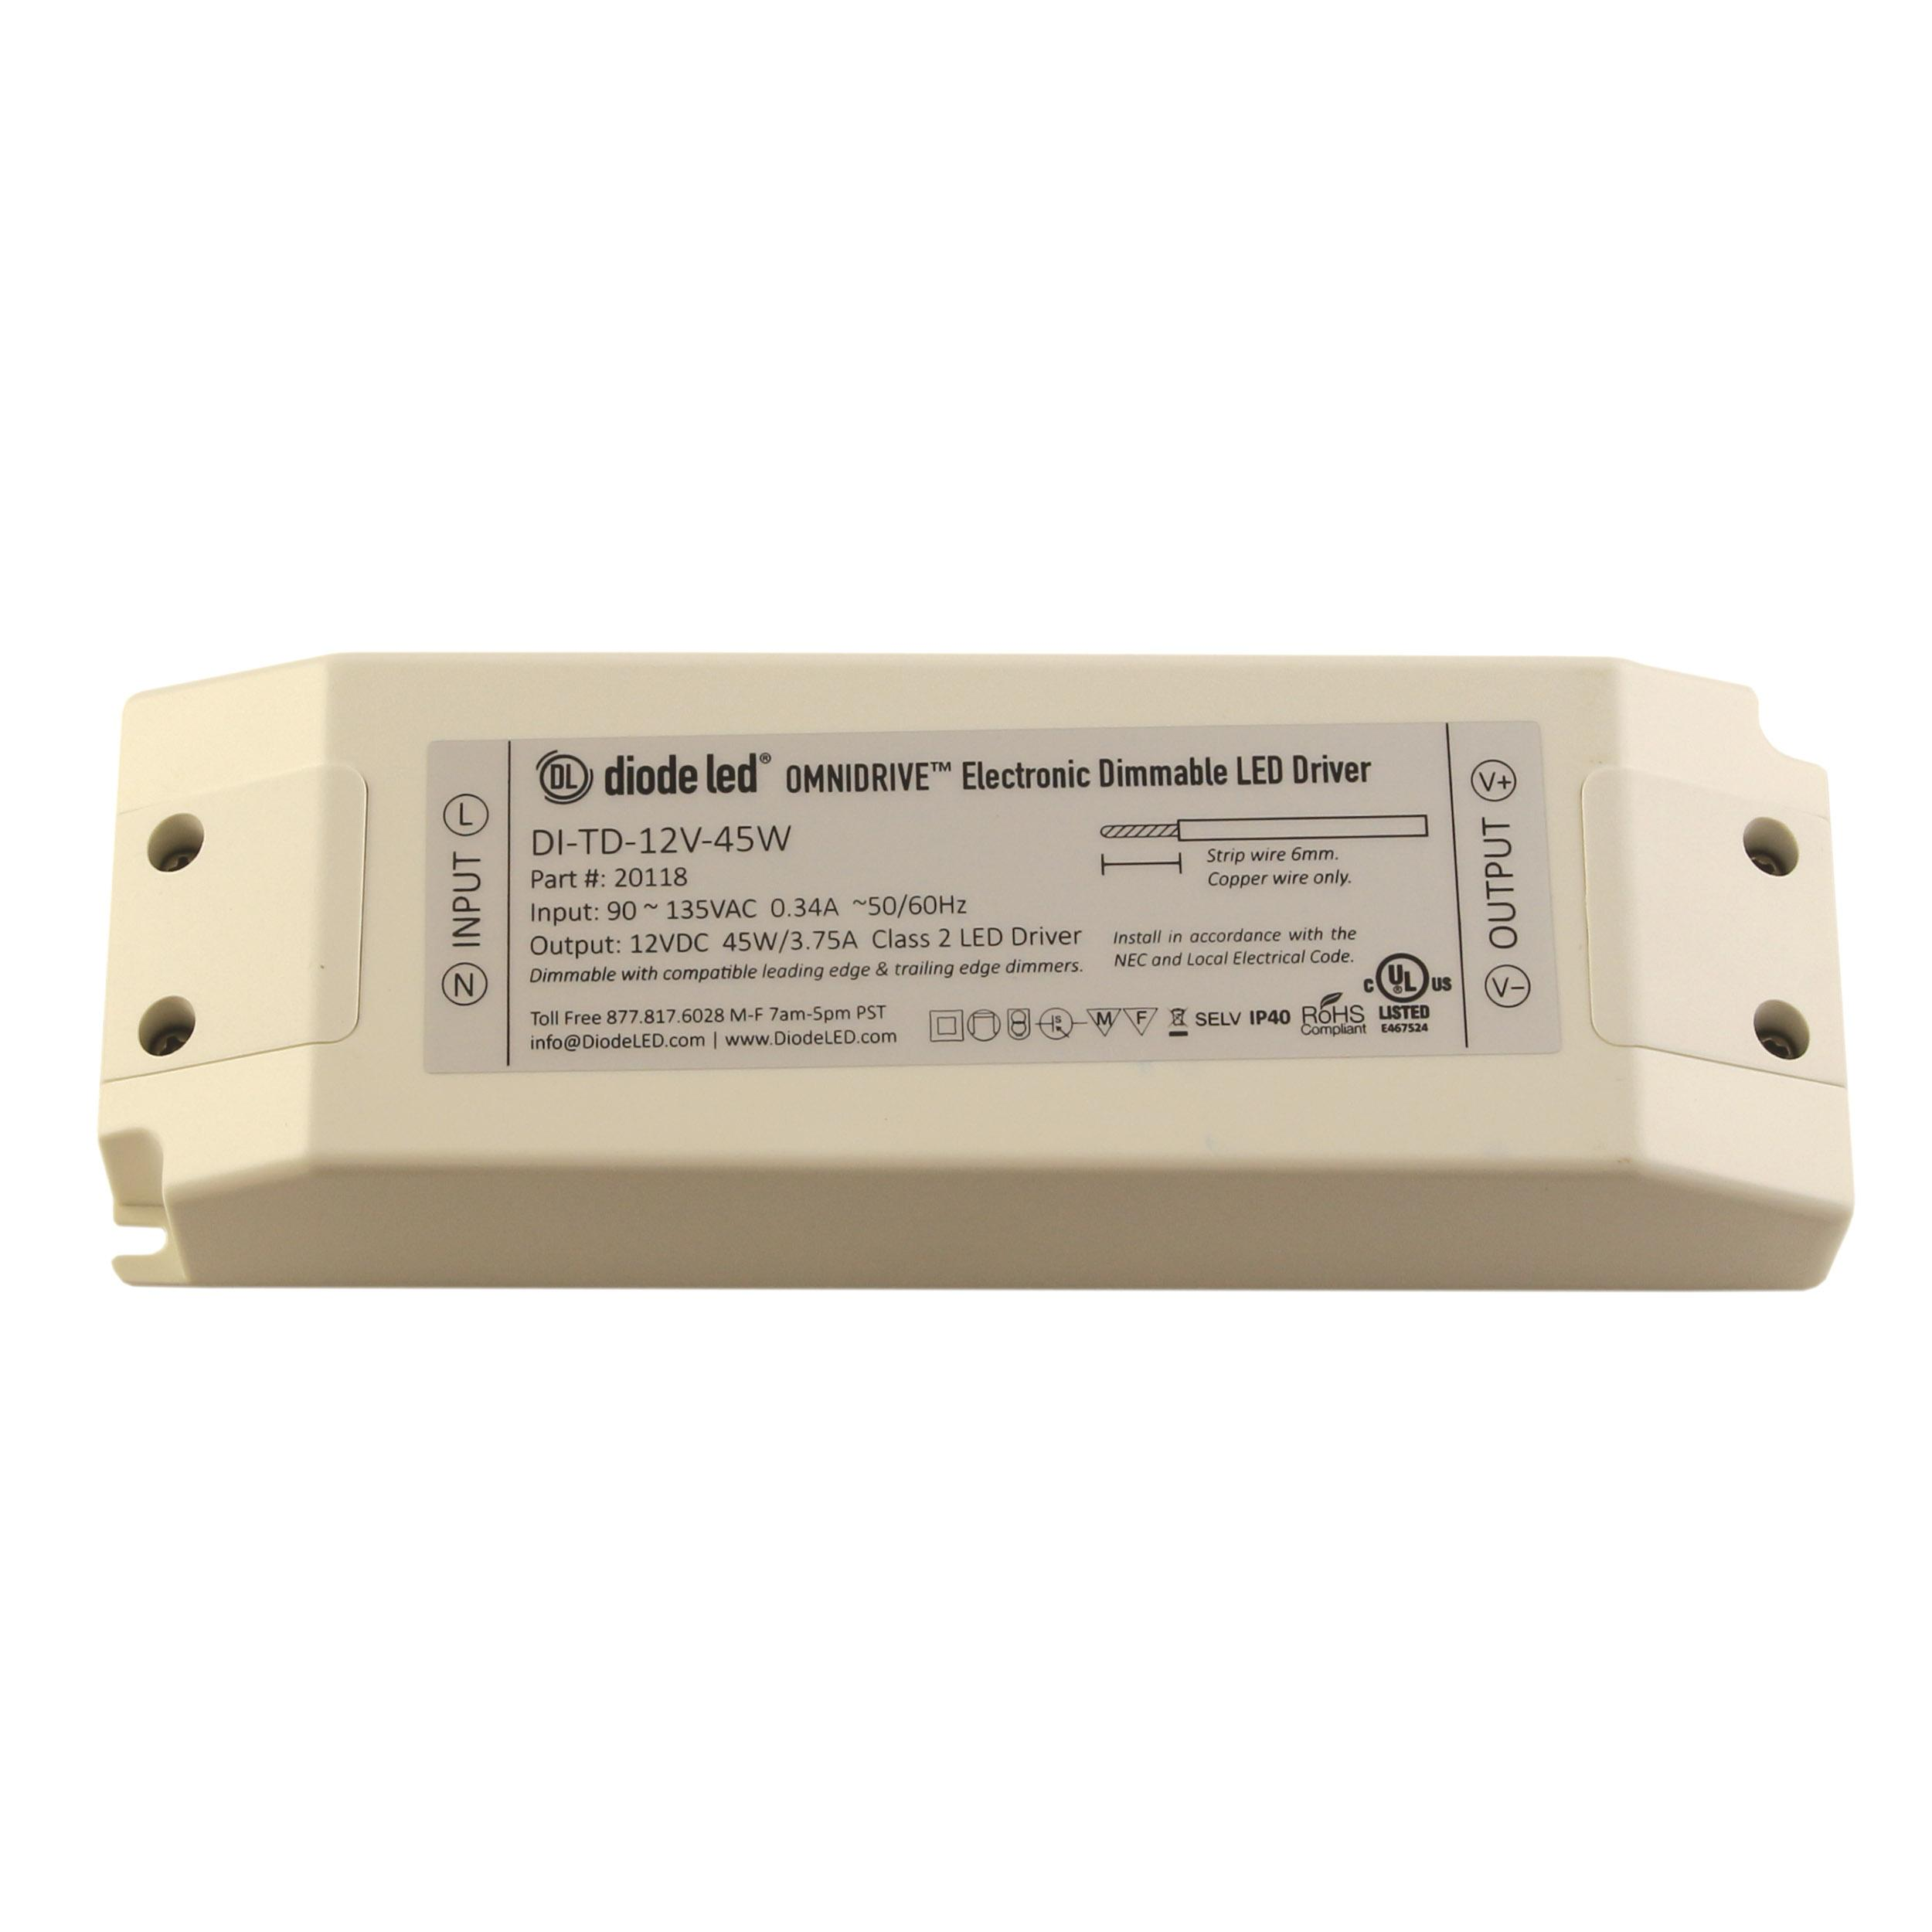 Dimmable Led Power Supplies Omnidrive Electronic Drivers Dimming Driver Wiring Diagram Control Panel Dimmer 0 10v